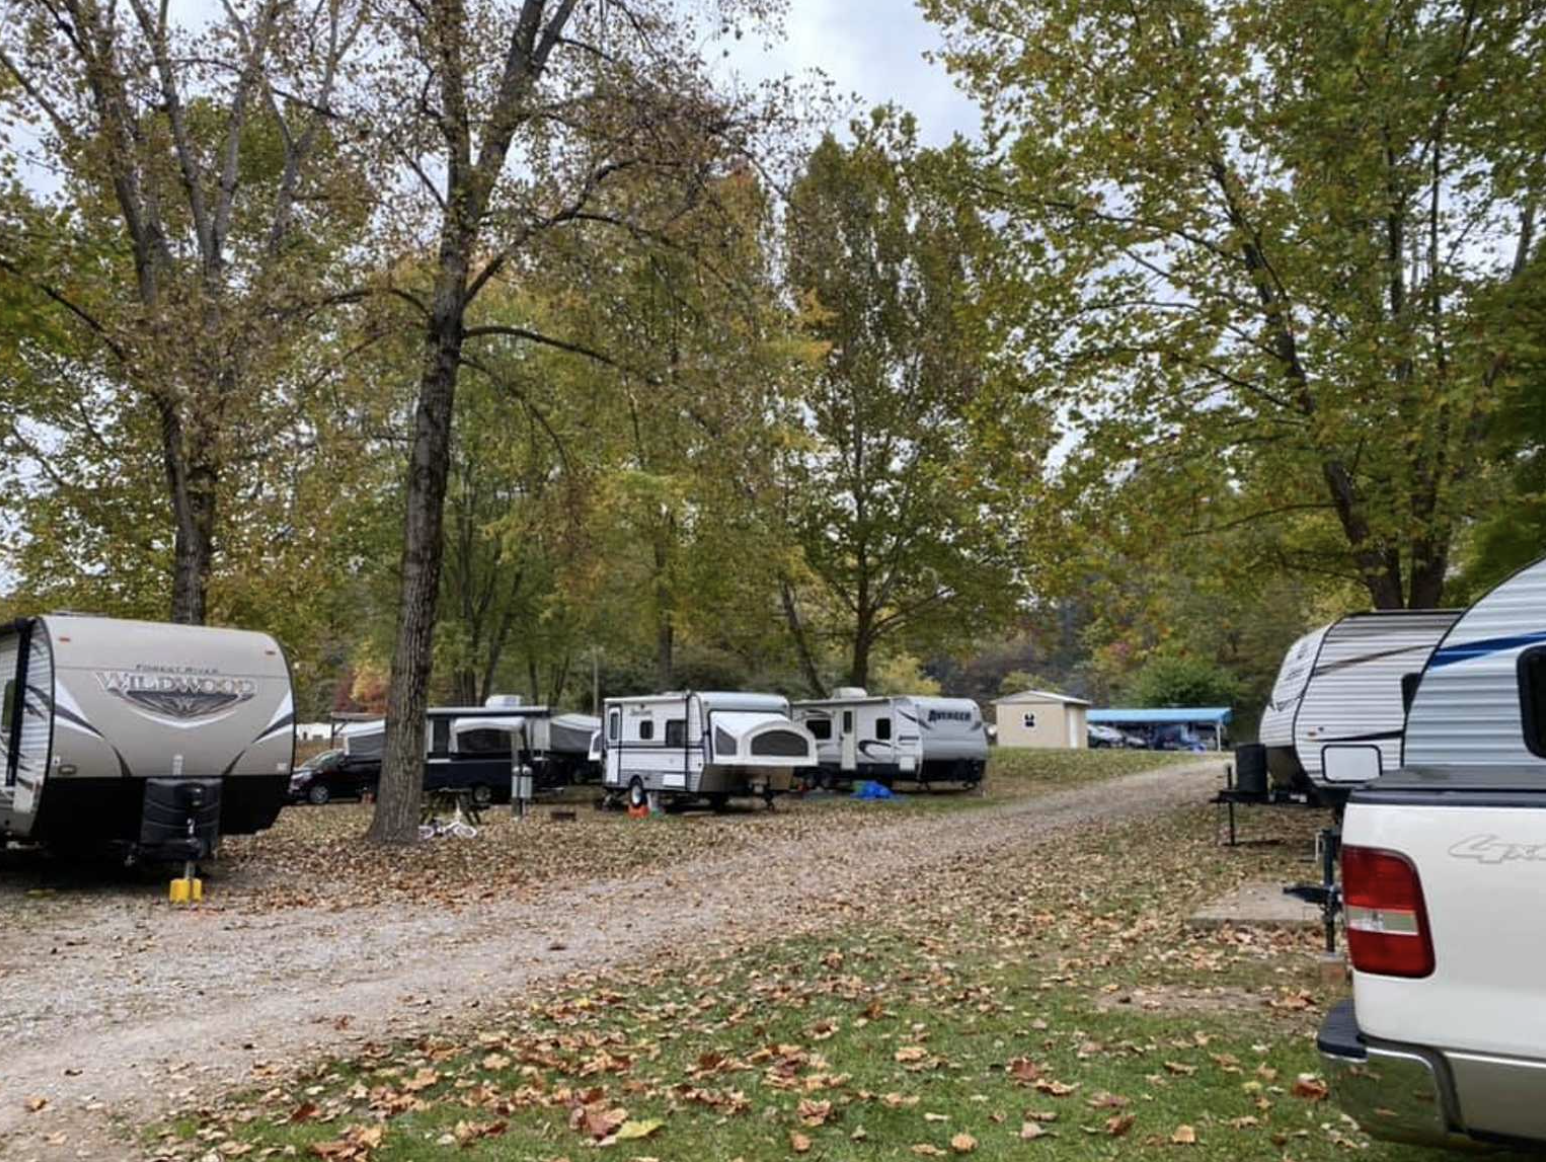 RVs parked at campground in fall